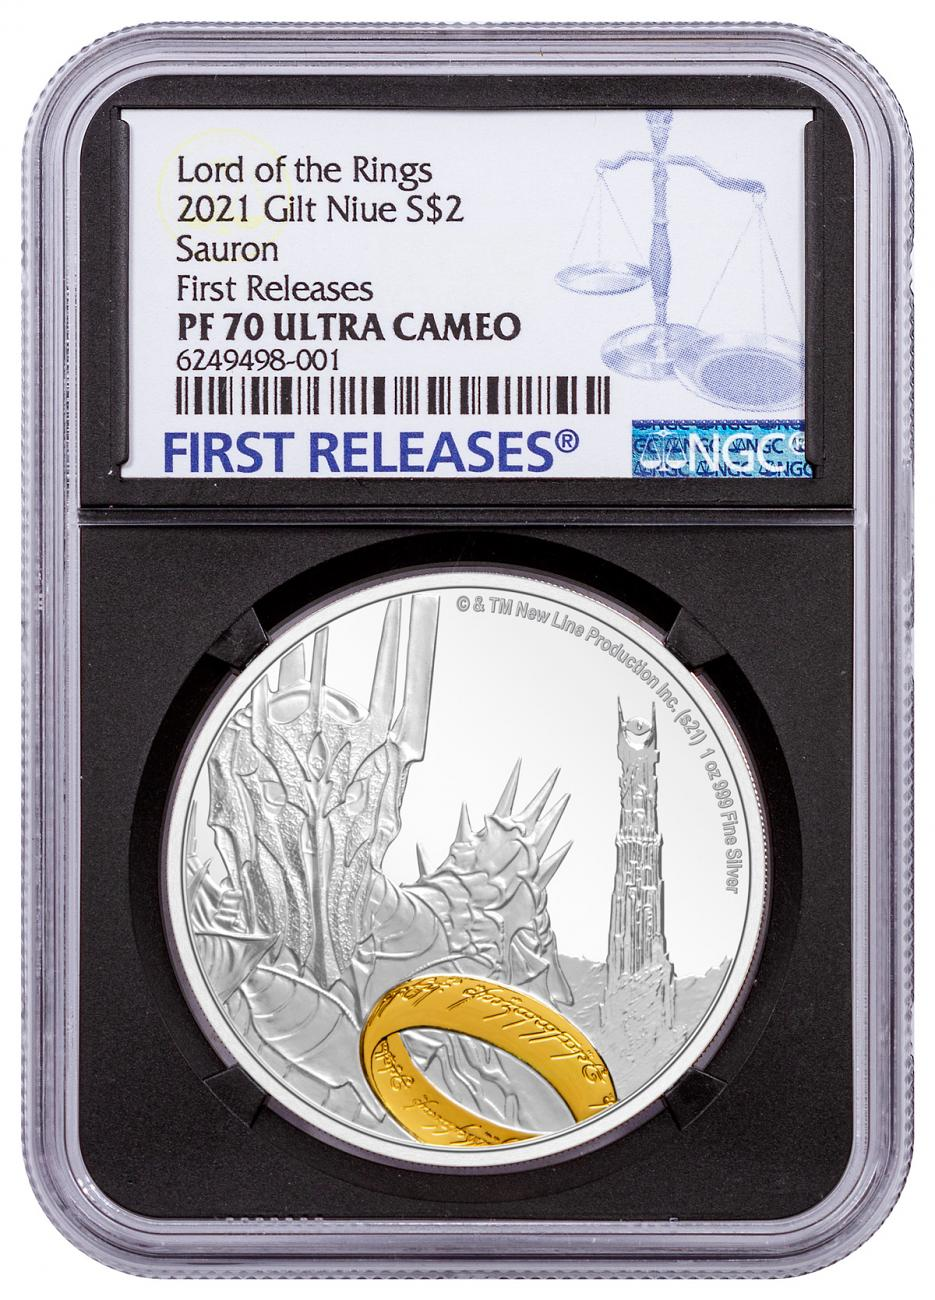 2021 Niue Lord of the Rings - Sauron 1 oz Silver Gilt Proof $2 Coin NGC PF70 FR COA Black Core Holder